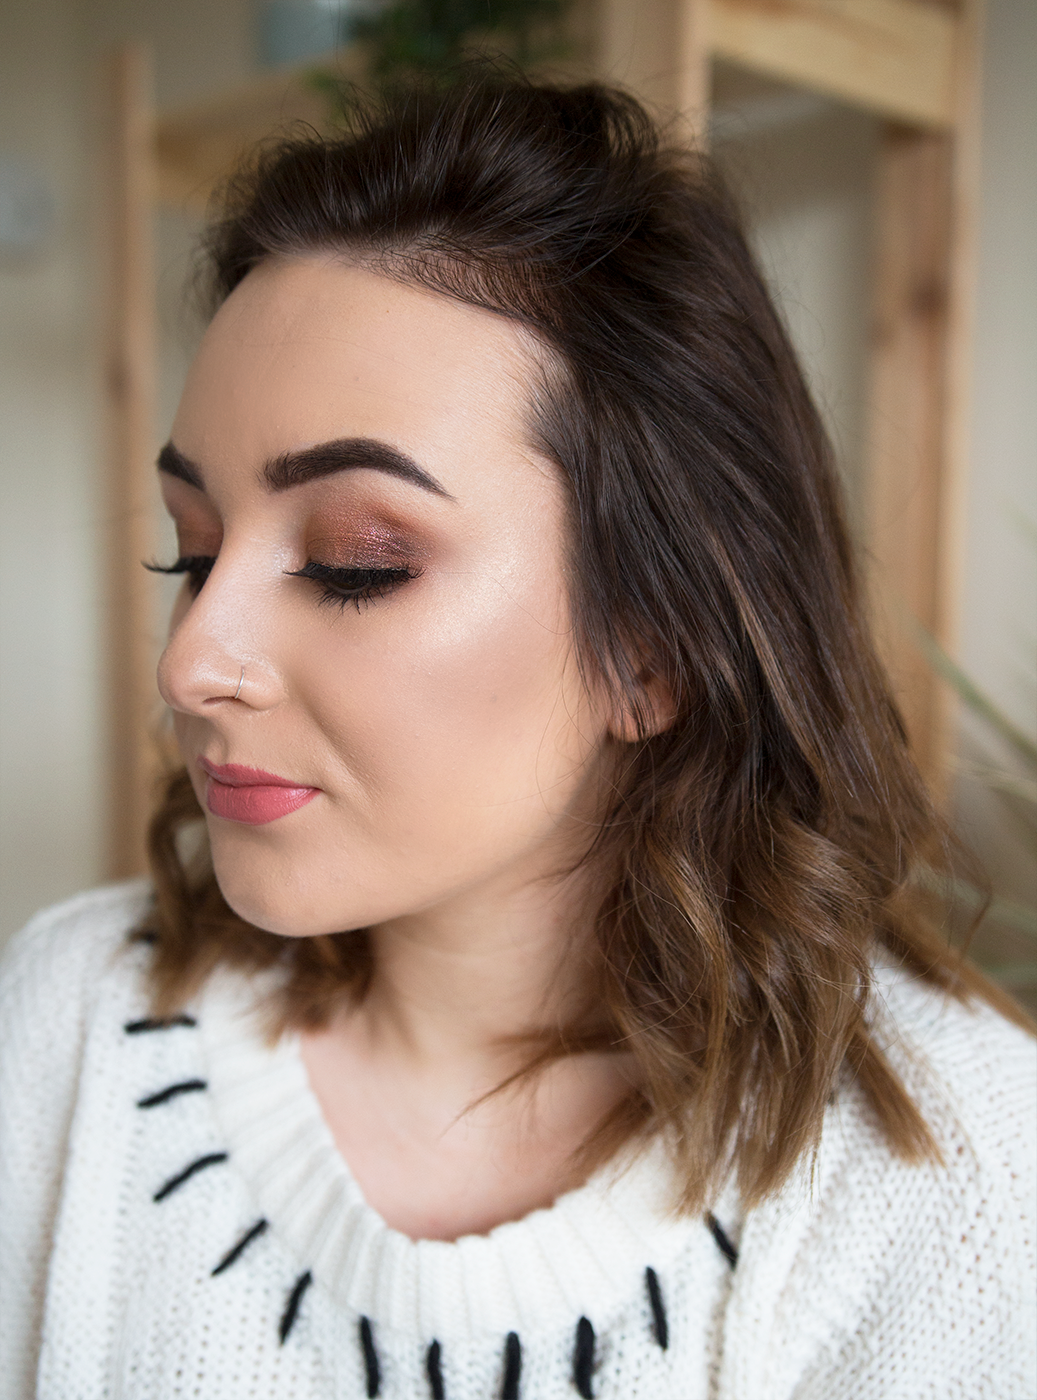 makeup look nars wanted palette it cosmetics cc cream too faced candlelight glow highlight